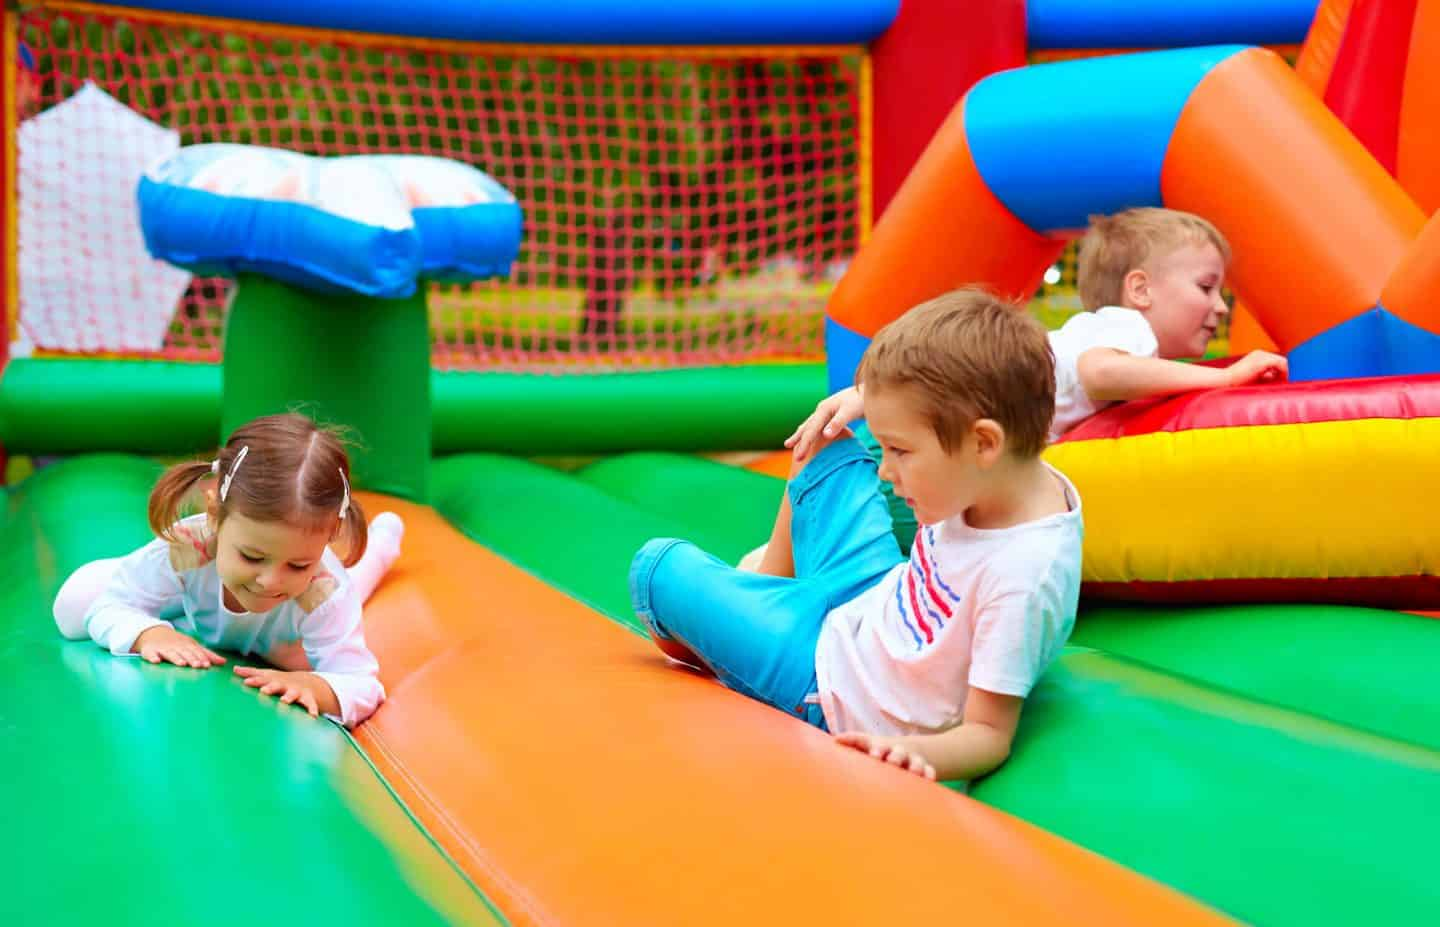 Childrens birthday party ideas - bouncy castle